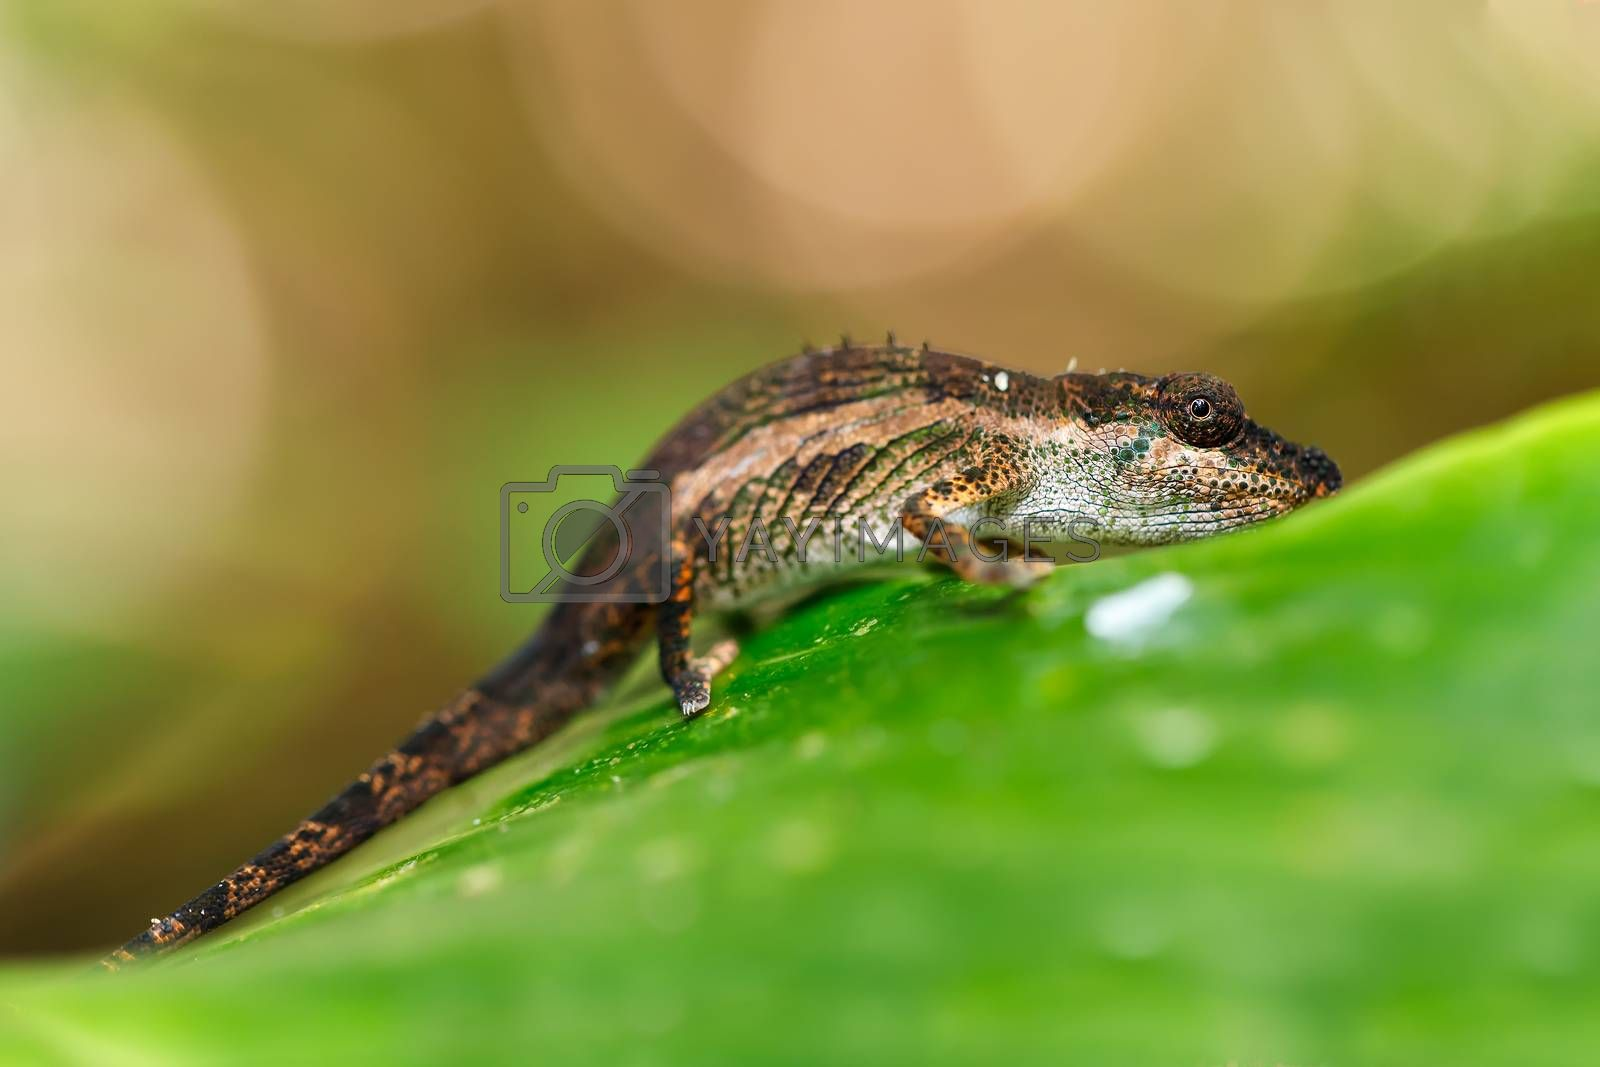 small baby of panther chameleon, Furcifer pardalis on small branch in rainforest at Masoala national park forest, Toamasina Province, Madagascar wildlife.